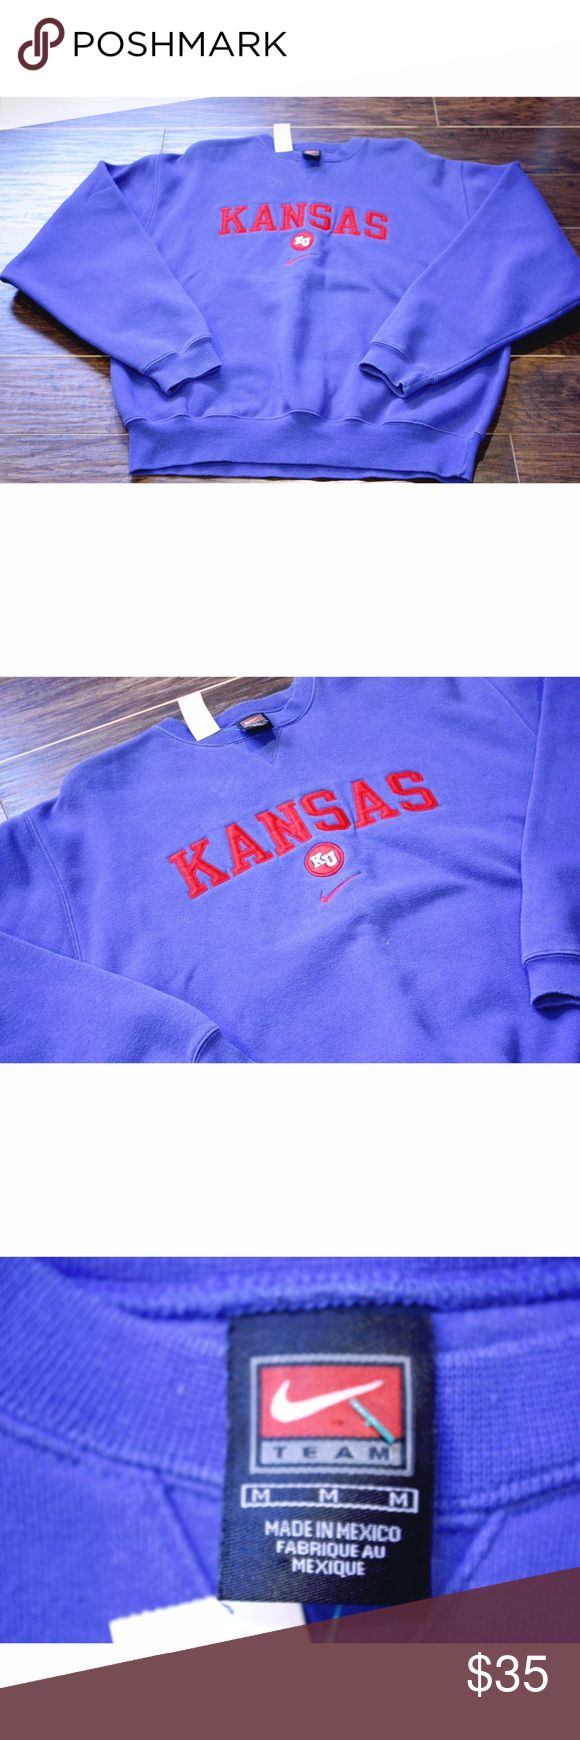 Nike University of Kansas Sweatshirt University of Kansas Nike Crewneck/ Sweatshirt. This is a size Medium. This tag appears to be an older tag. This sweatshirt shows no signs of wear, in great condition! Blue is still very vibrant. Kansas is embroidered along the front. Plain back. All in all this is a great piece to add to your wardrobe. Nike Shirts Sweatshirts & Hoodies